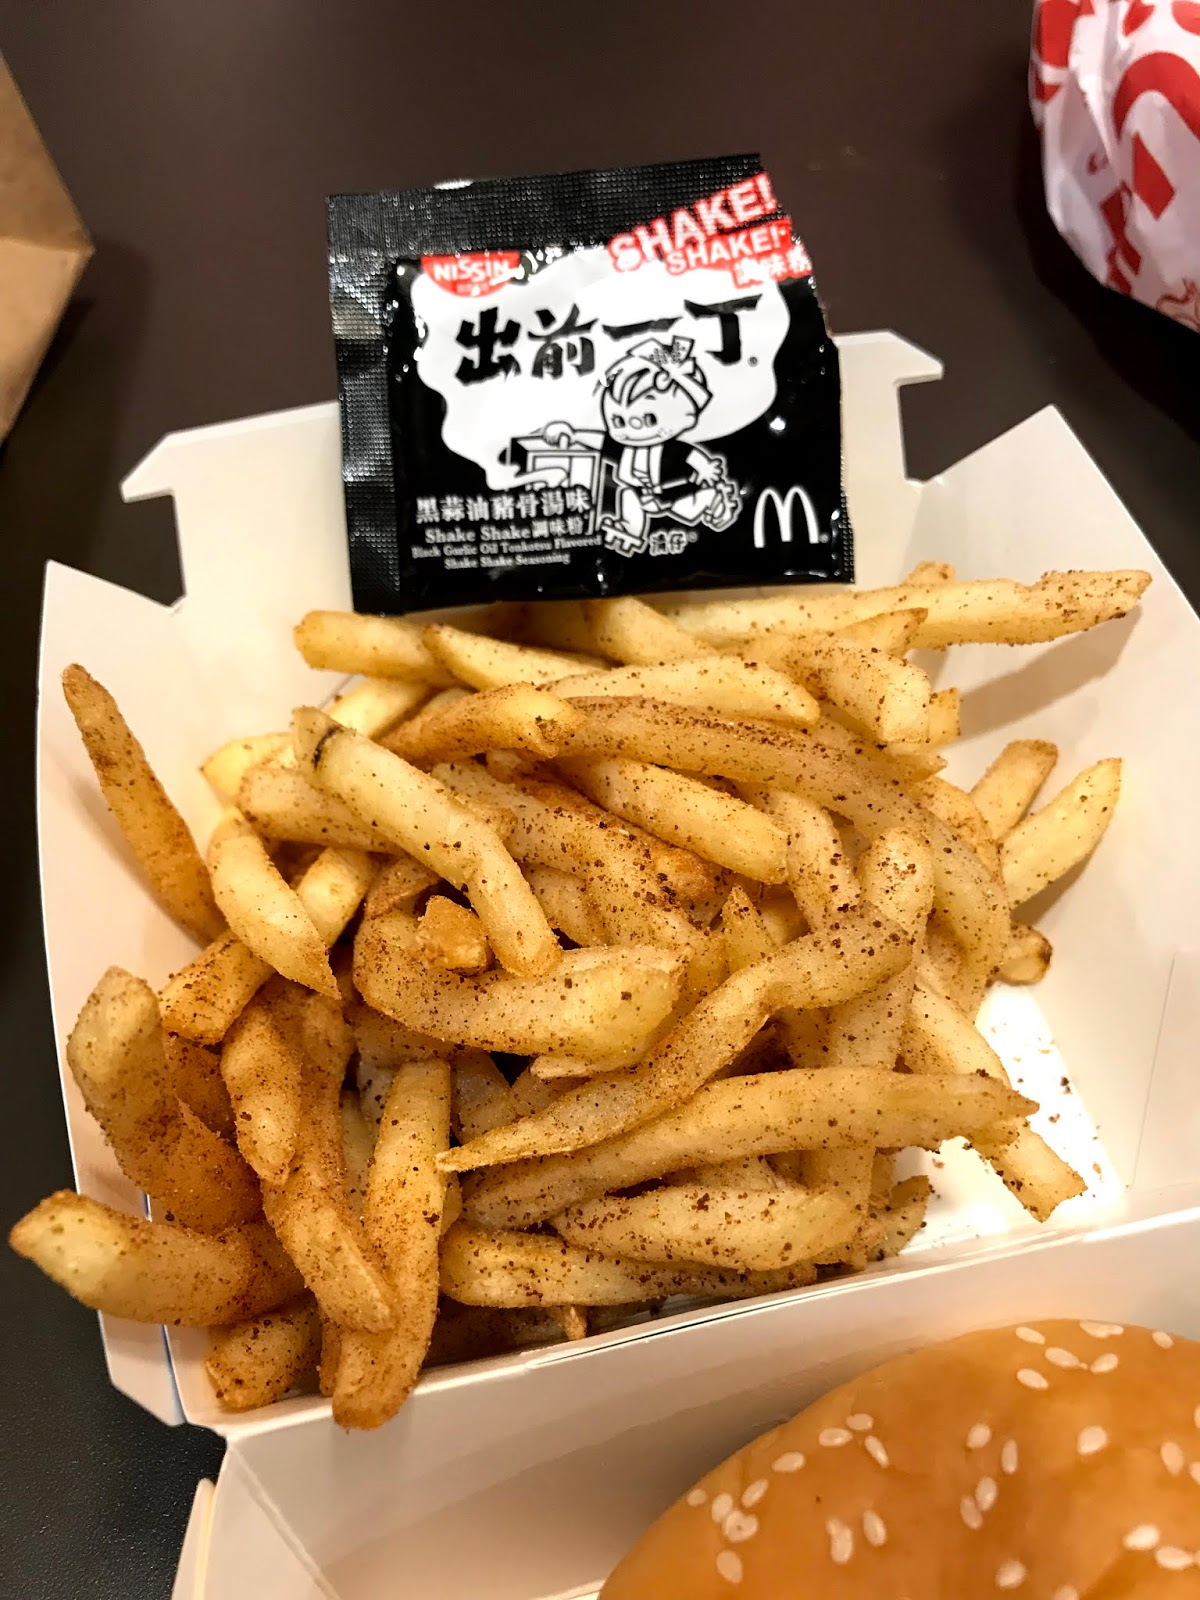 Hong-Kong-McDonalds-shake-shake-fries